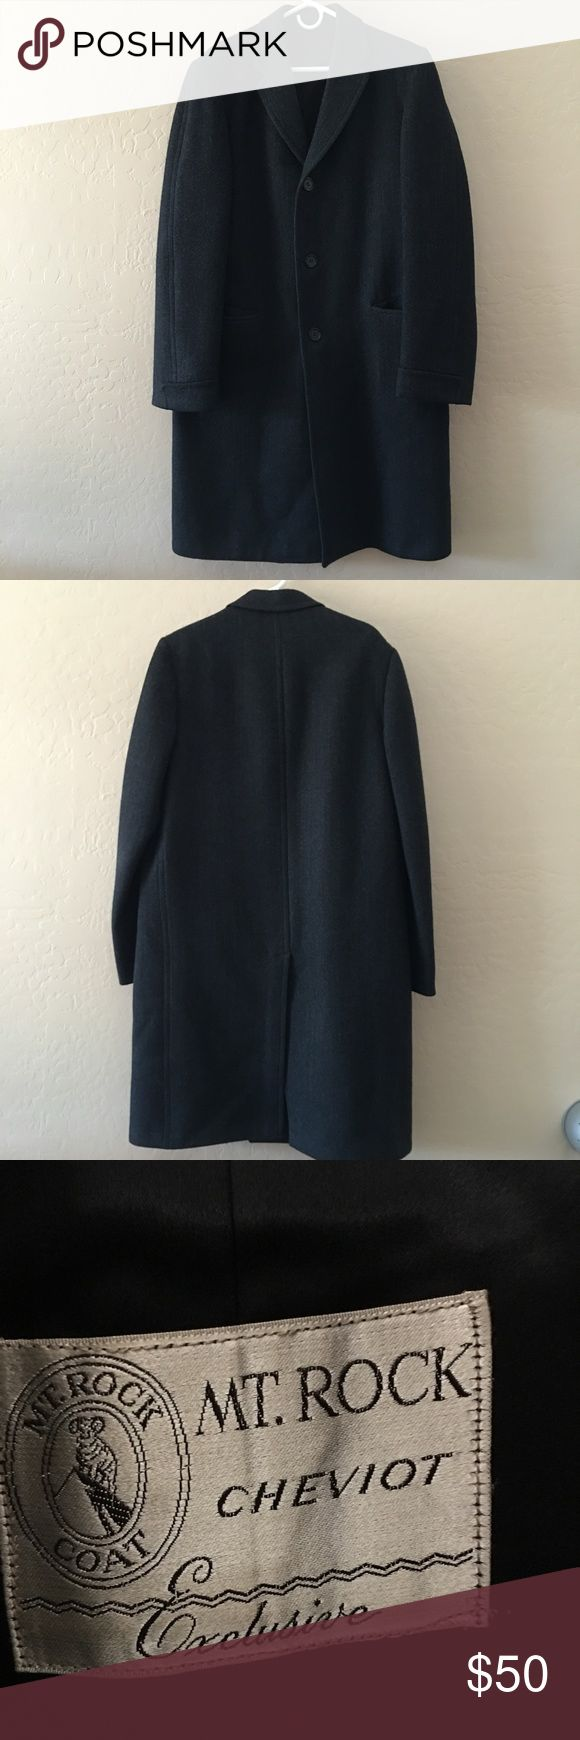 Men's Wool Trench Coat Mt. Rock Cheviot exclusive men's trench coat.  This is a very nice XXL dark grey trench coat.  It is heavy wool and is a herringbone pattern with large buttons.  Measurements upon request. Mt. Cheviot Jackets & Coats Trench Coats